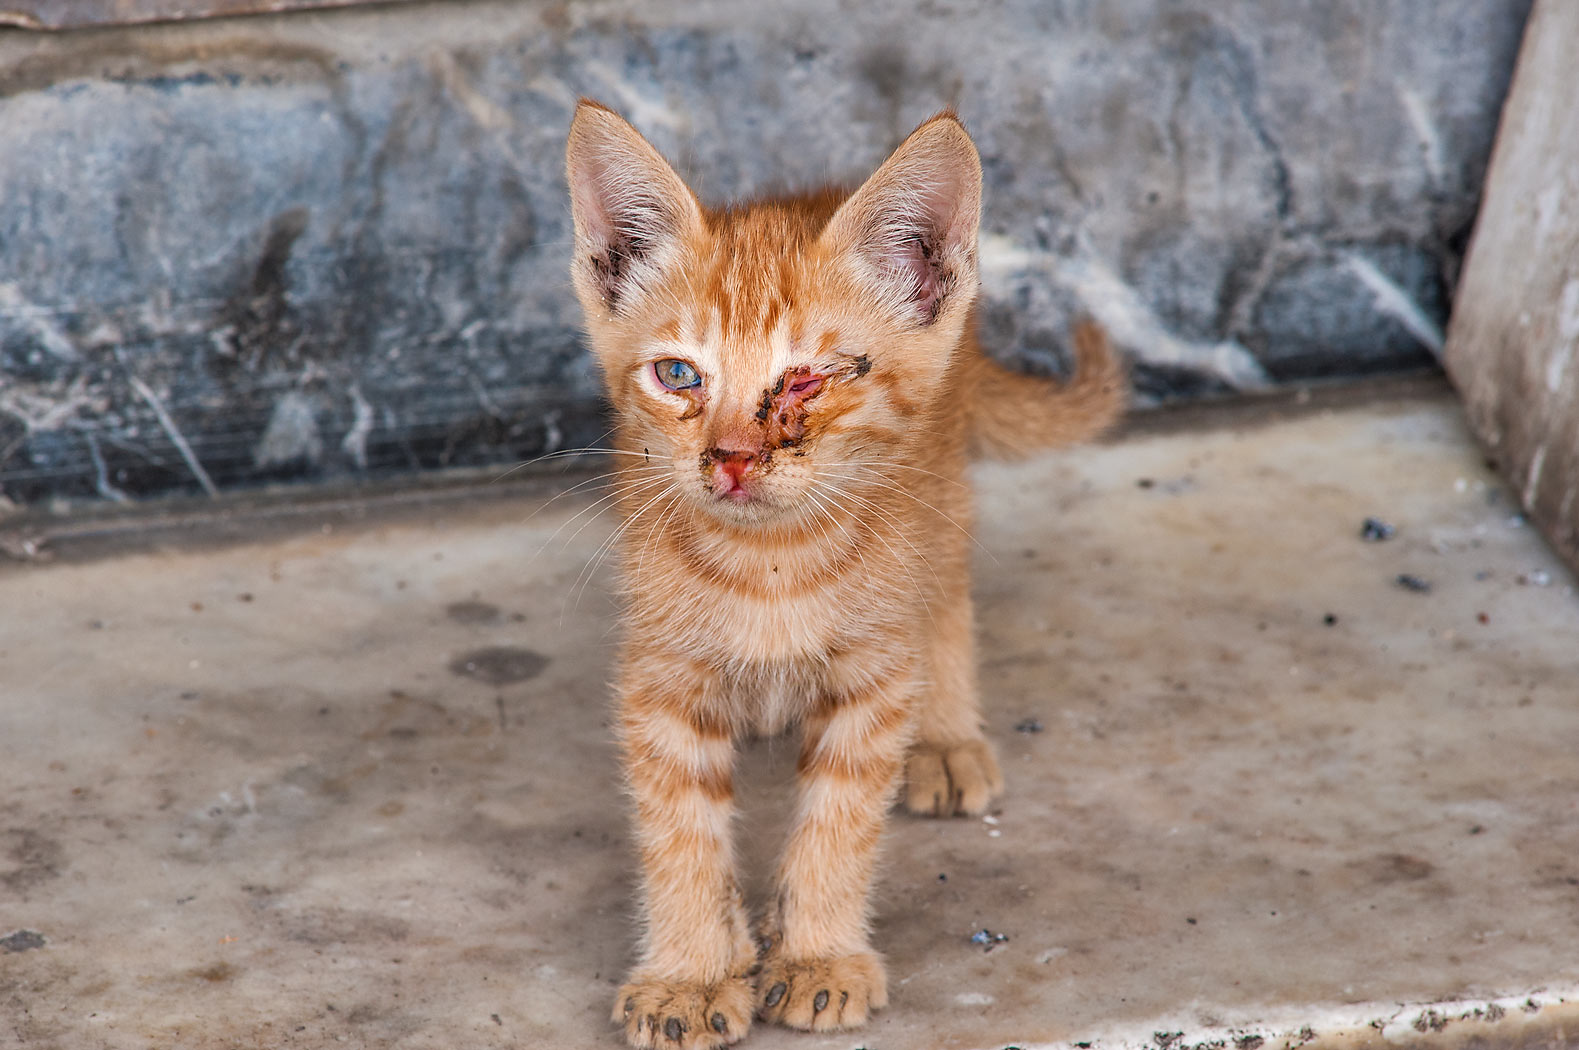 Brown kitten with eye infection on Al Najada St. in Musheirib area. Doha, Qatar